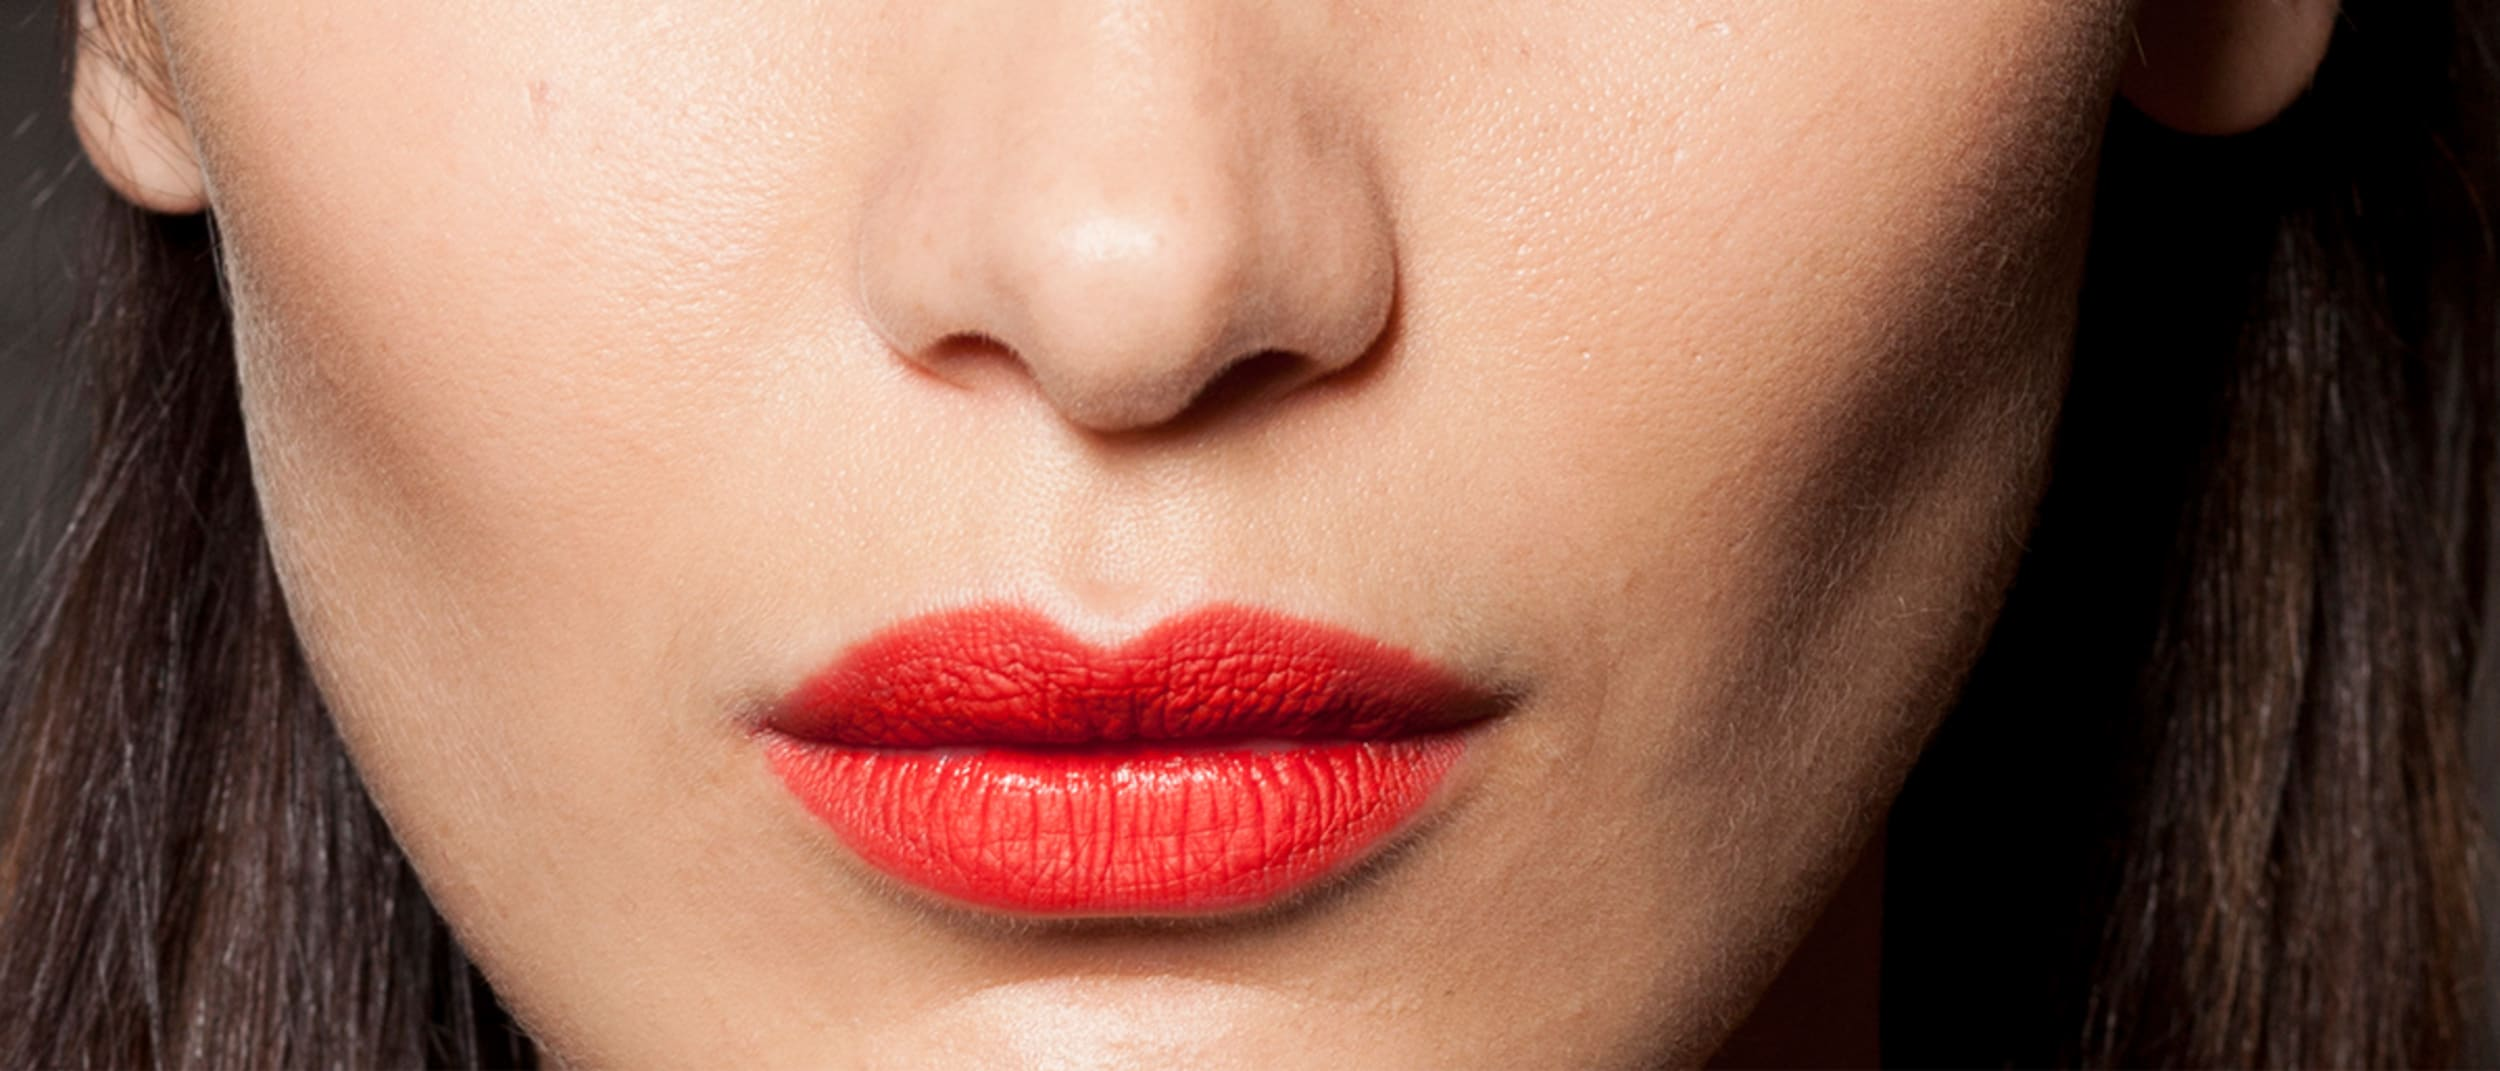 You've been doing red lipstick all wrong